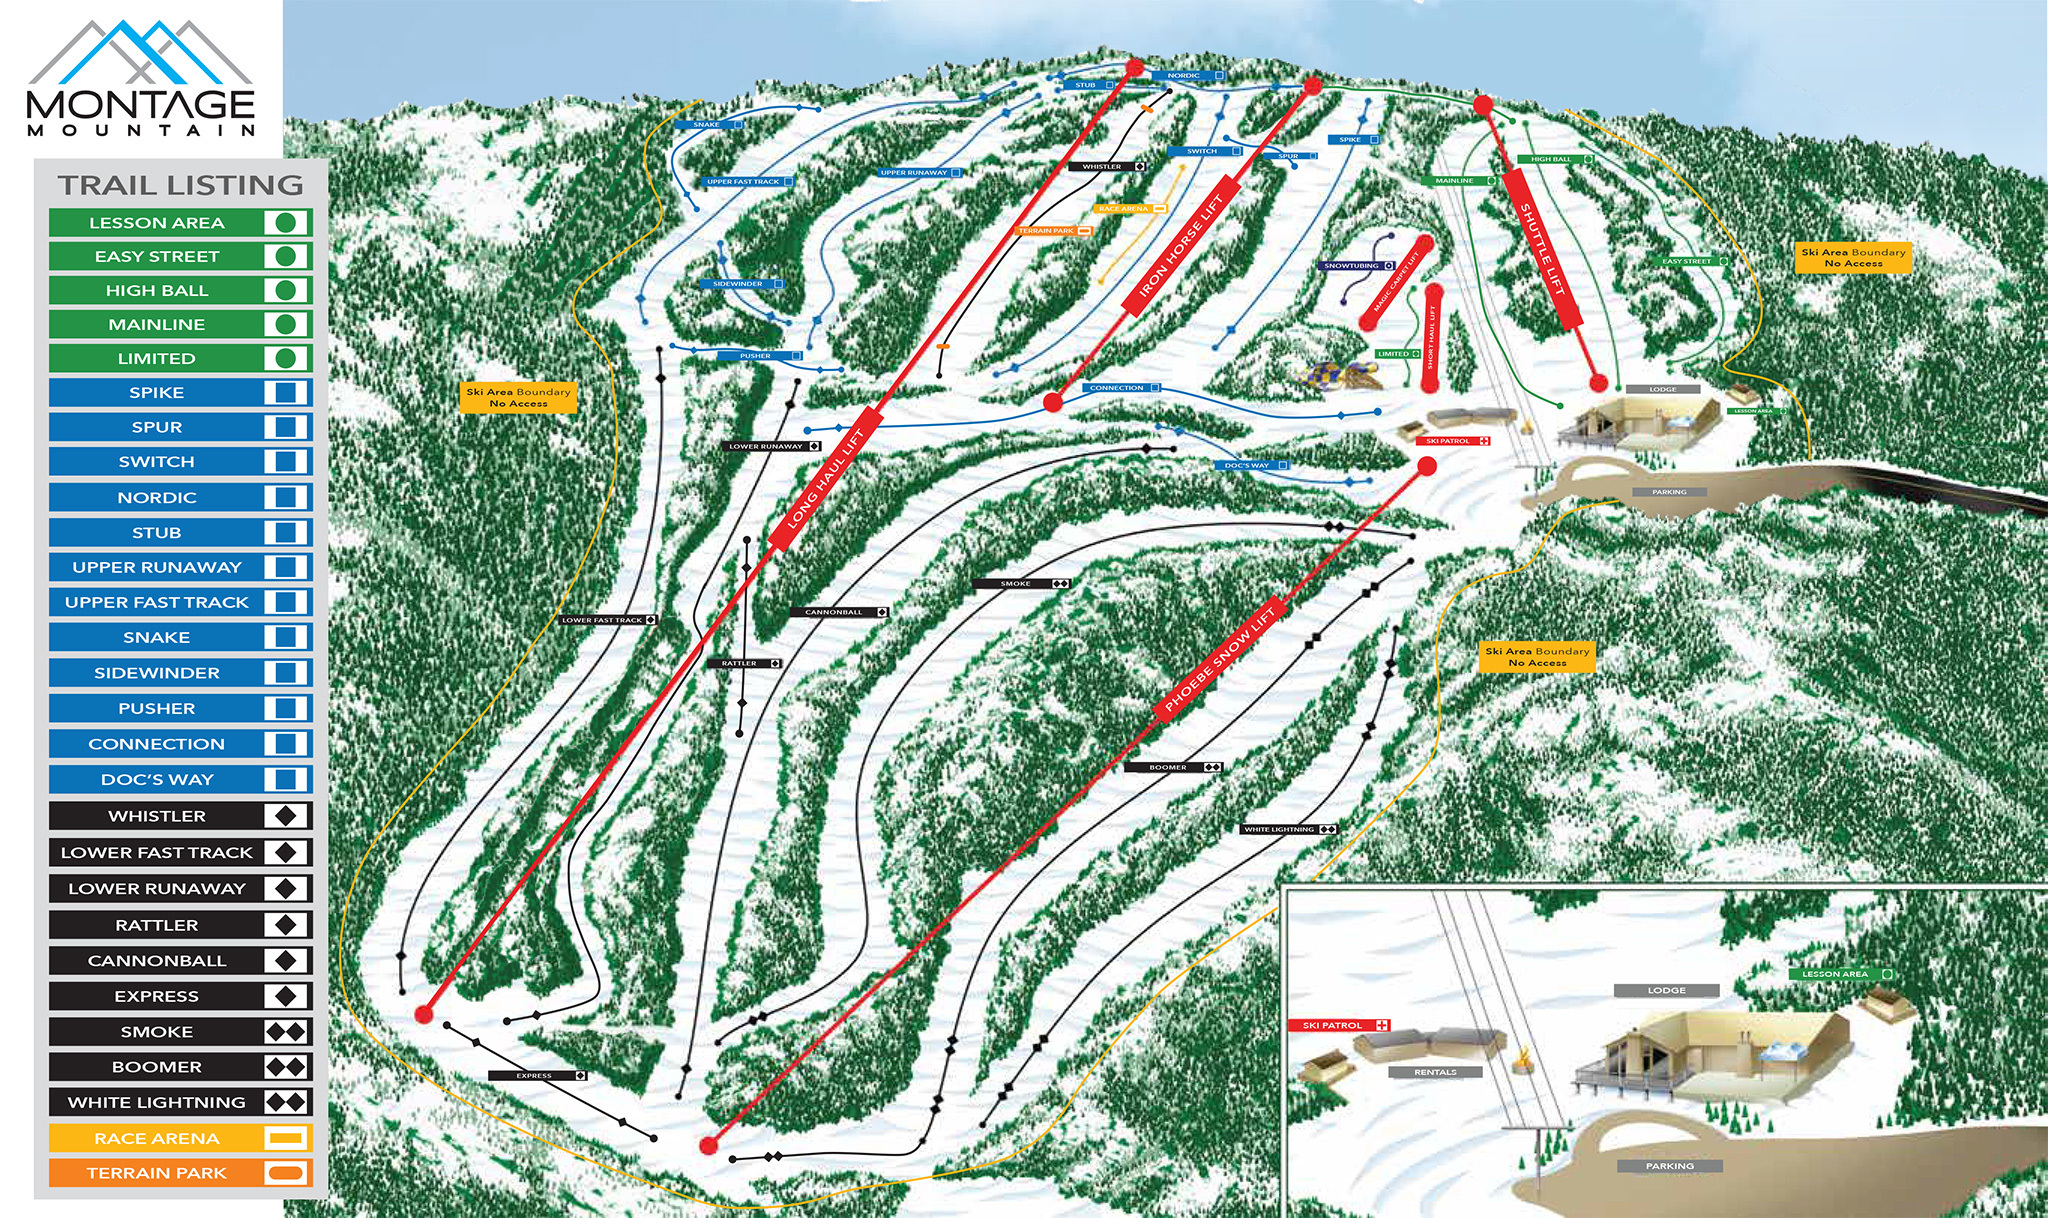 Montage Mountain Trail Map Onthesnow